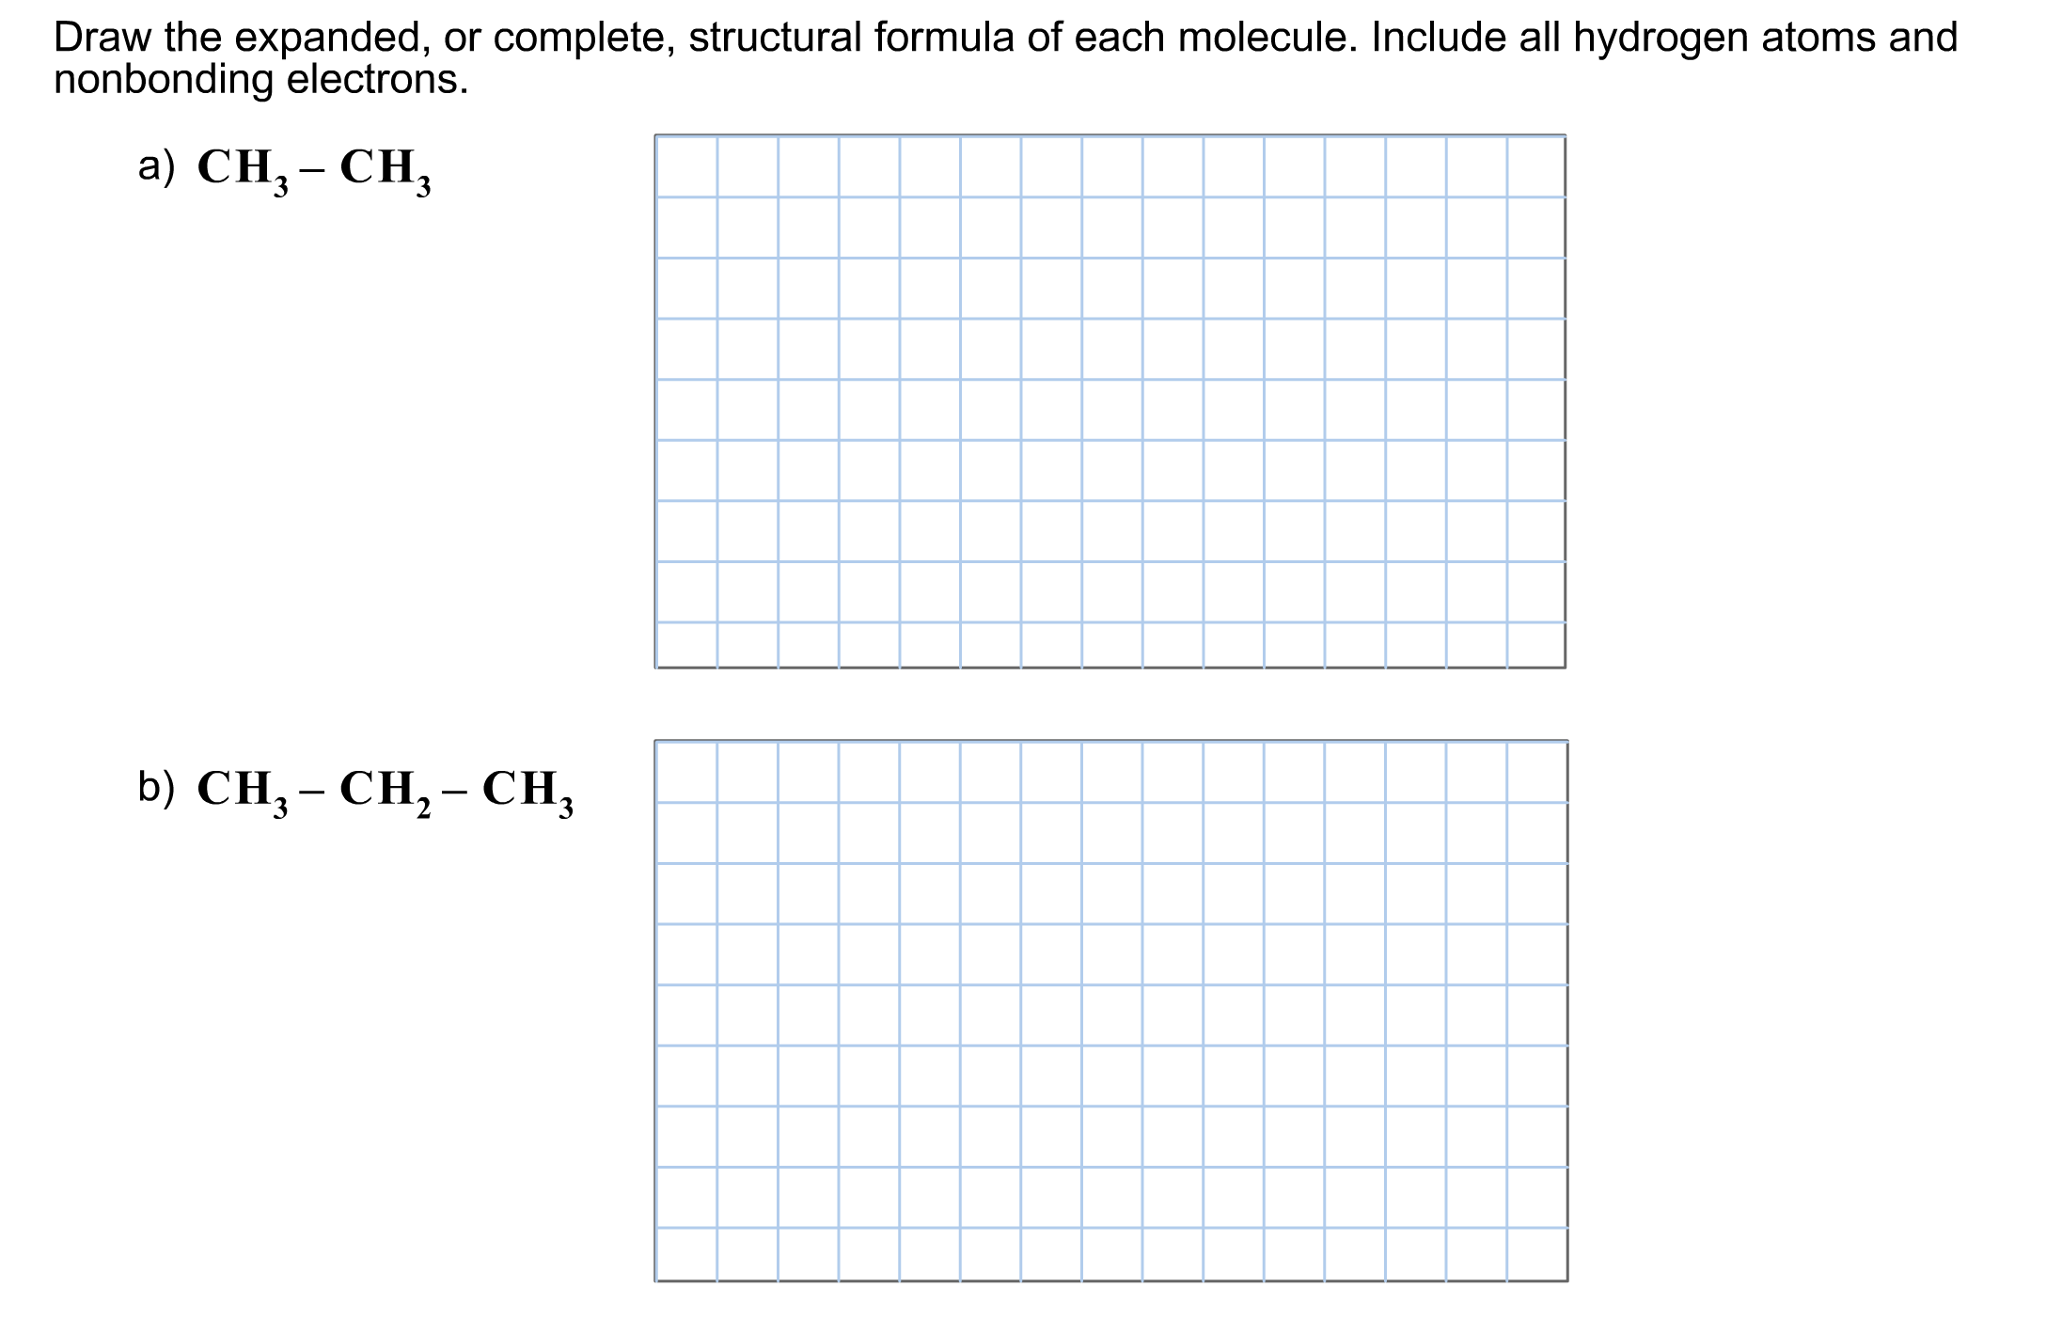 draw the expanded or complete structural formula